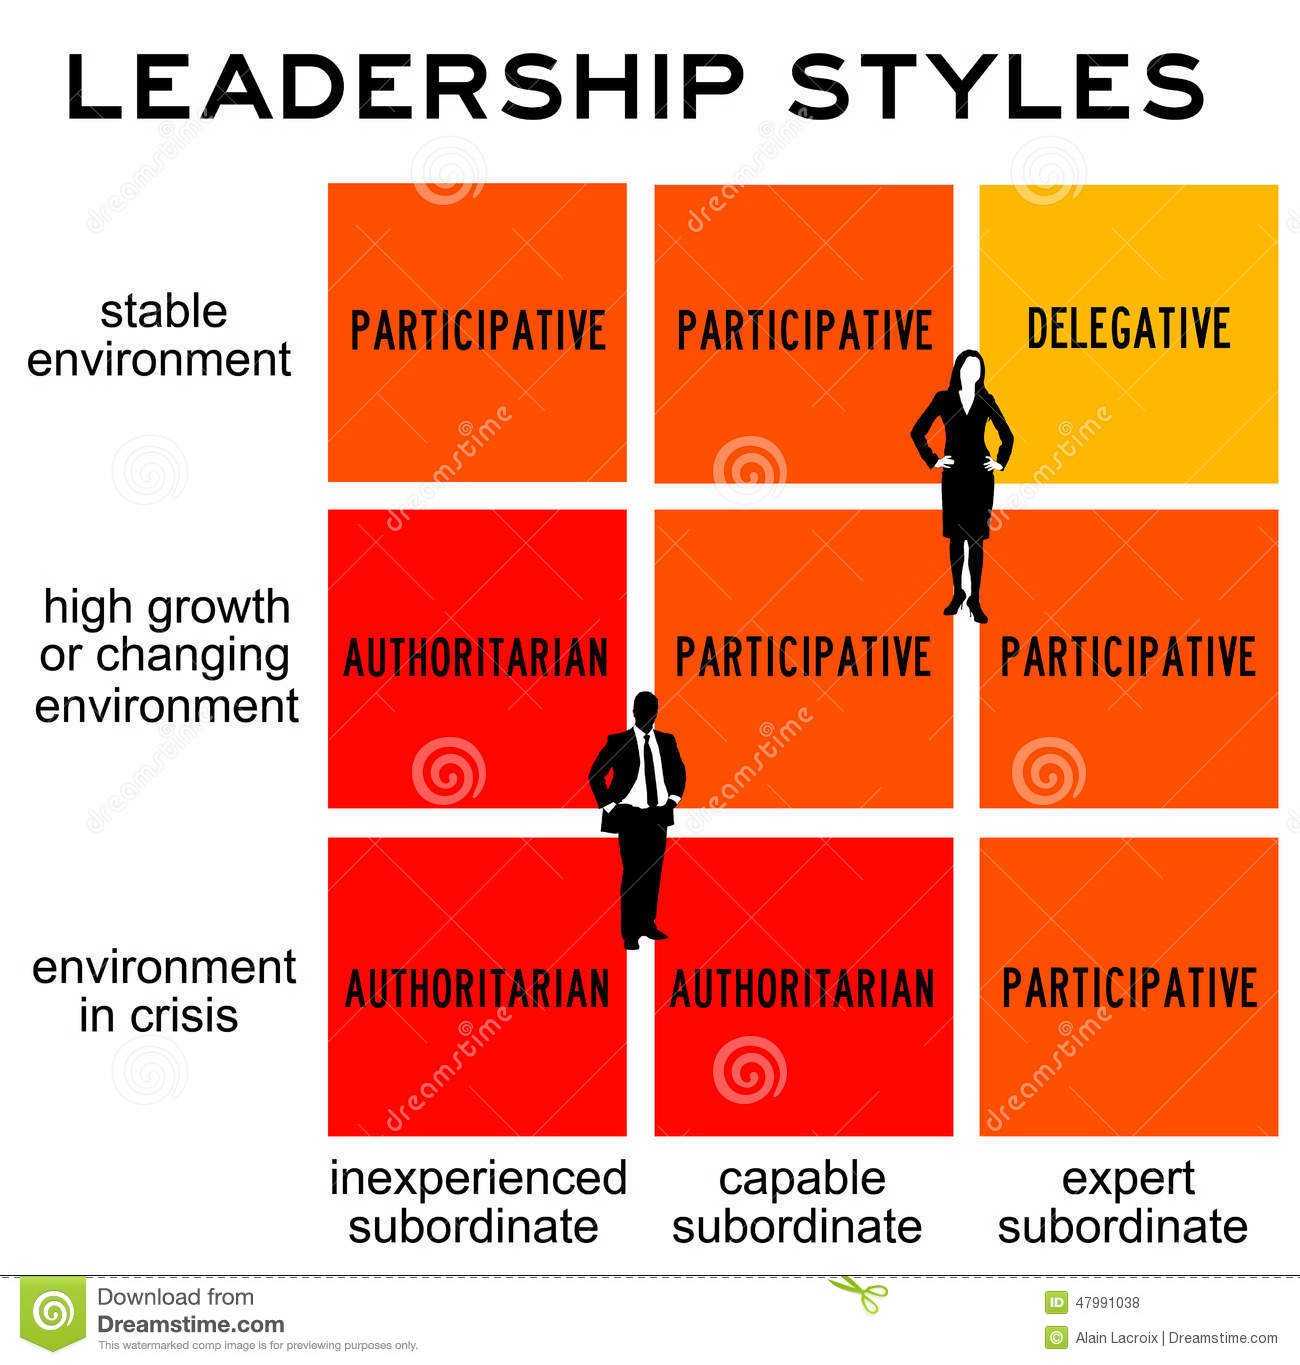 democratic style of management